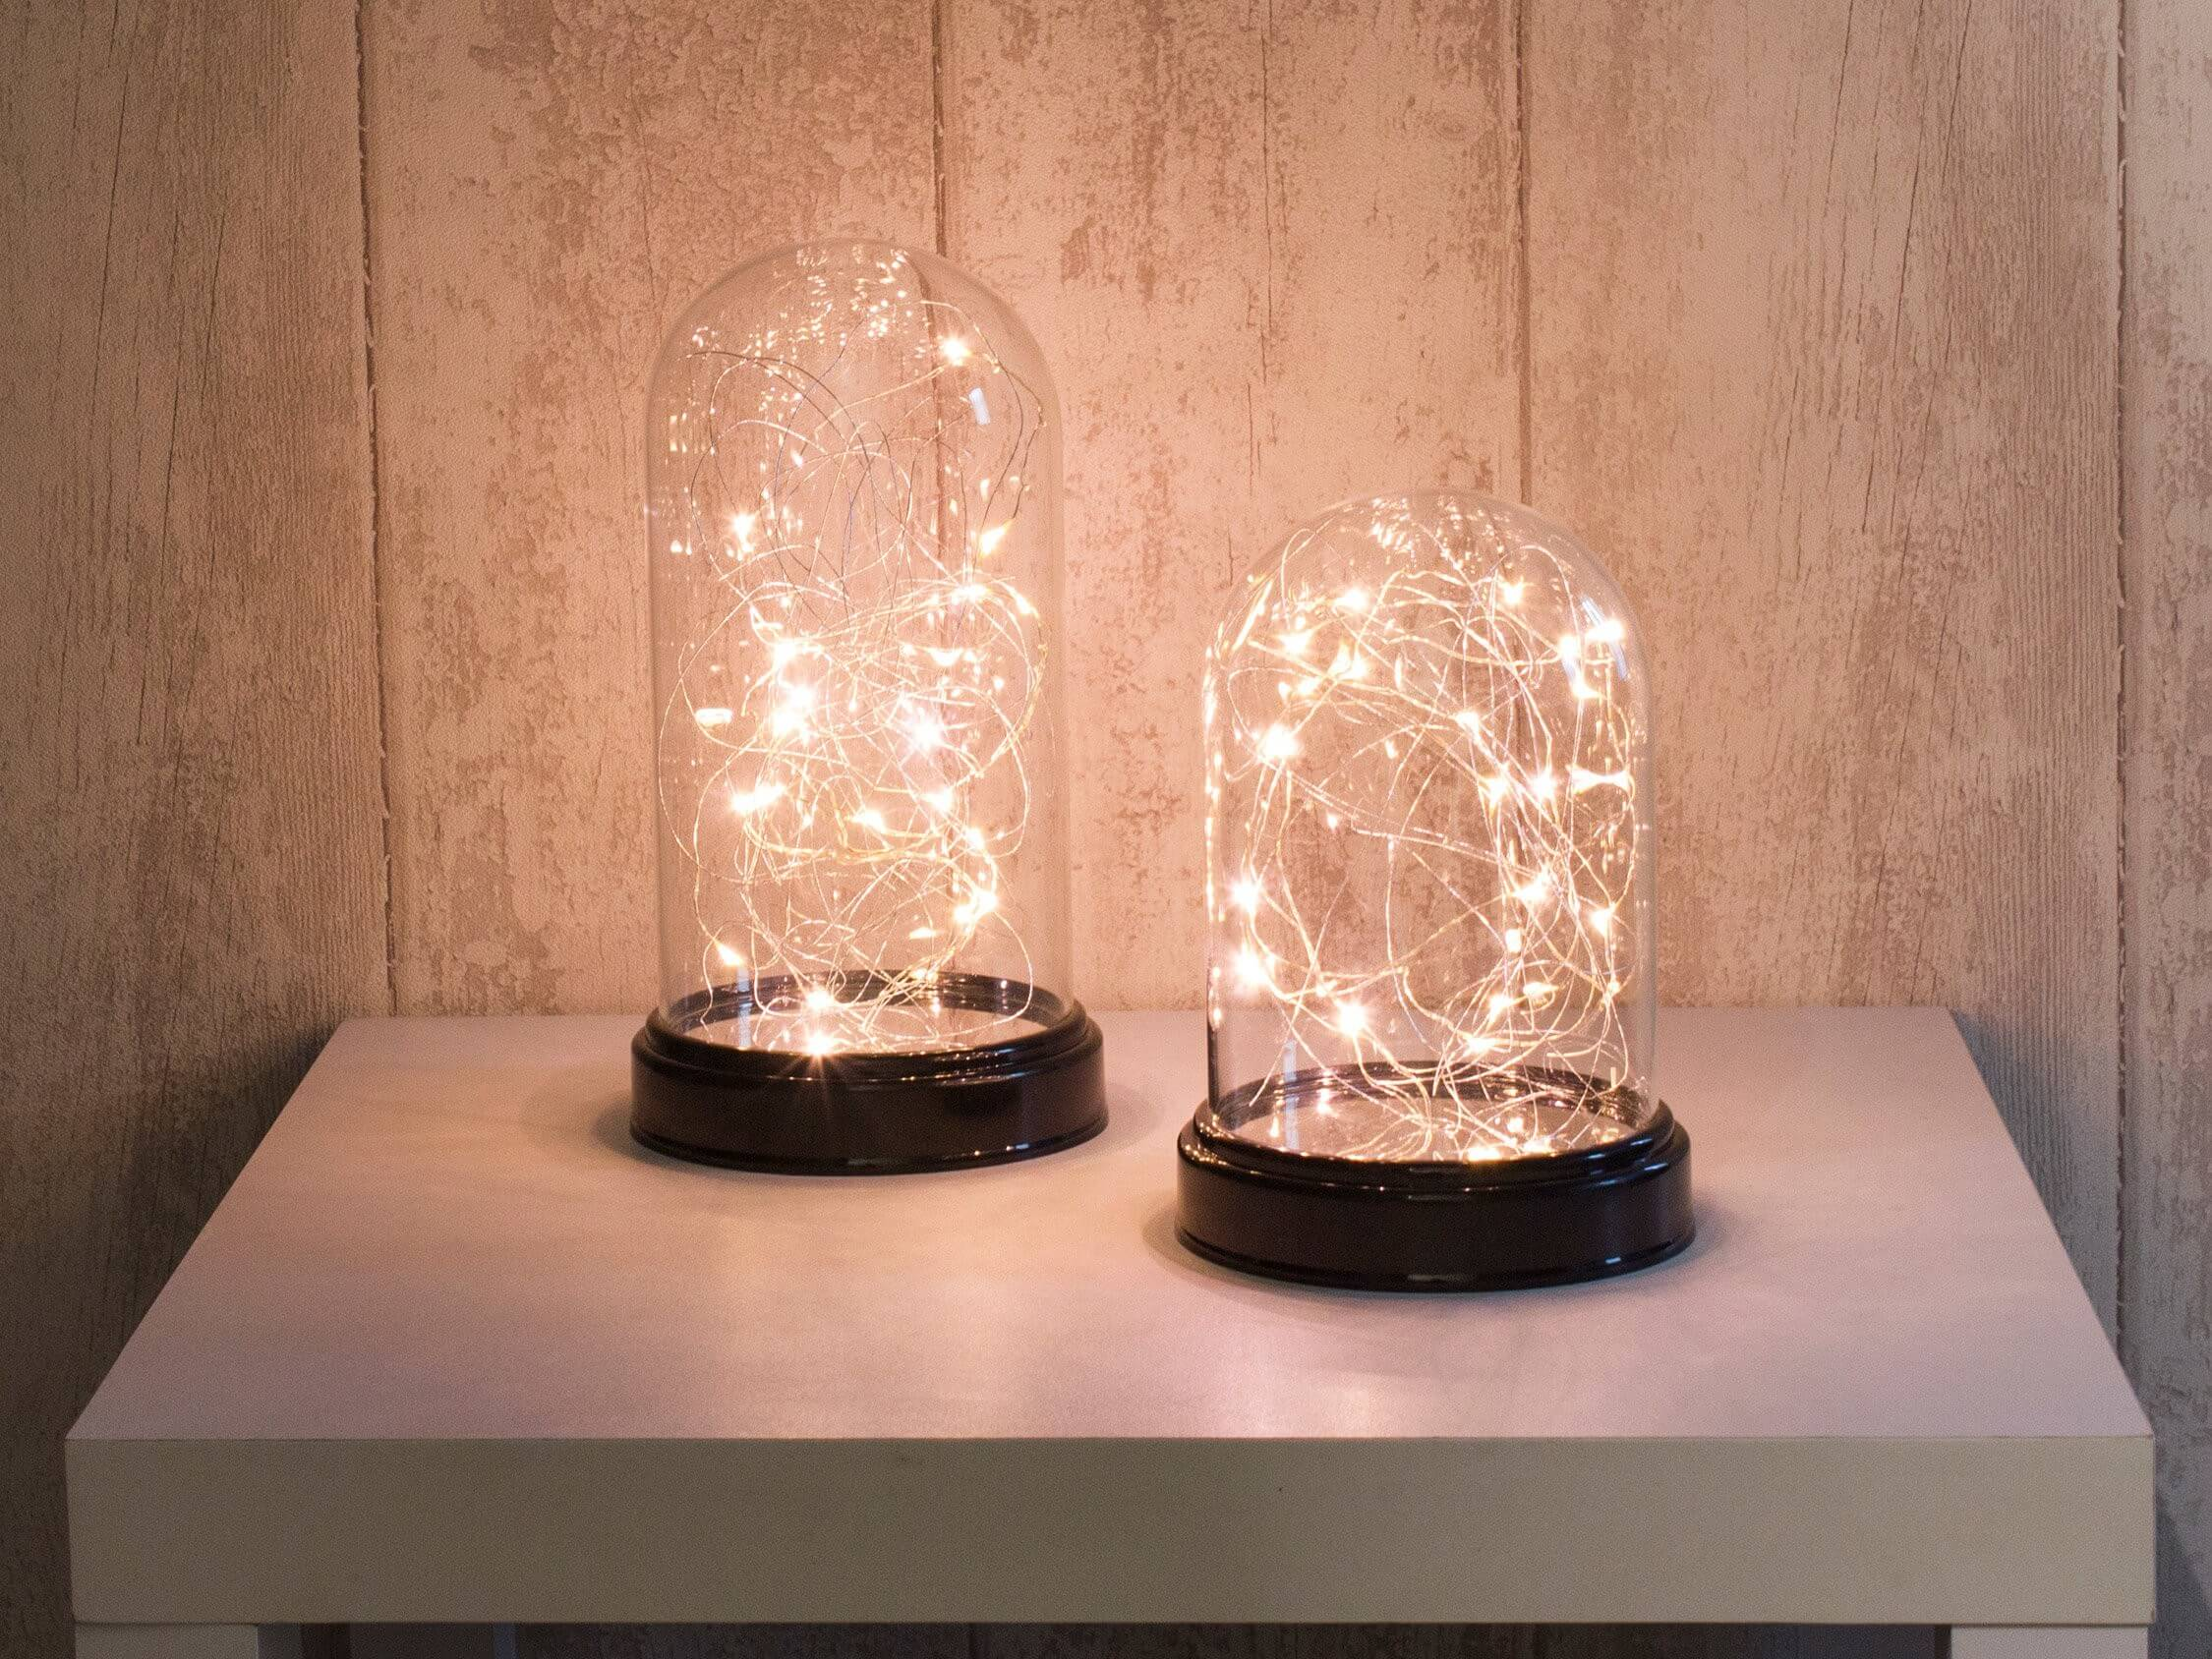 cloche verre guirlande lumineuse led 32cm blanc chaud cuivre. Black Bedroom Furniture Sets. Home Design Ideas